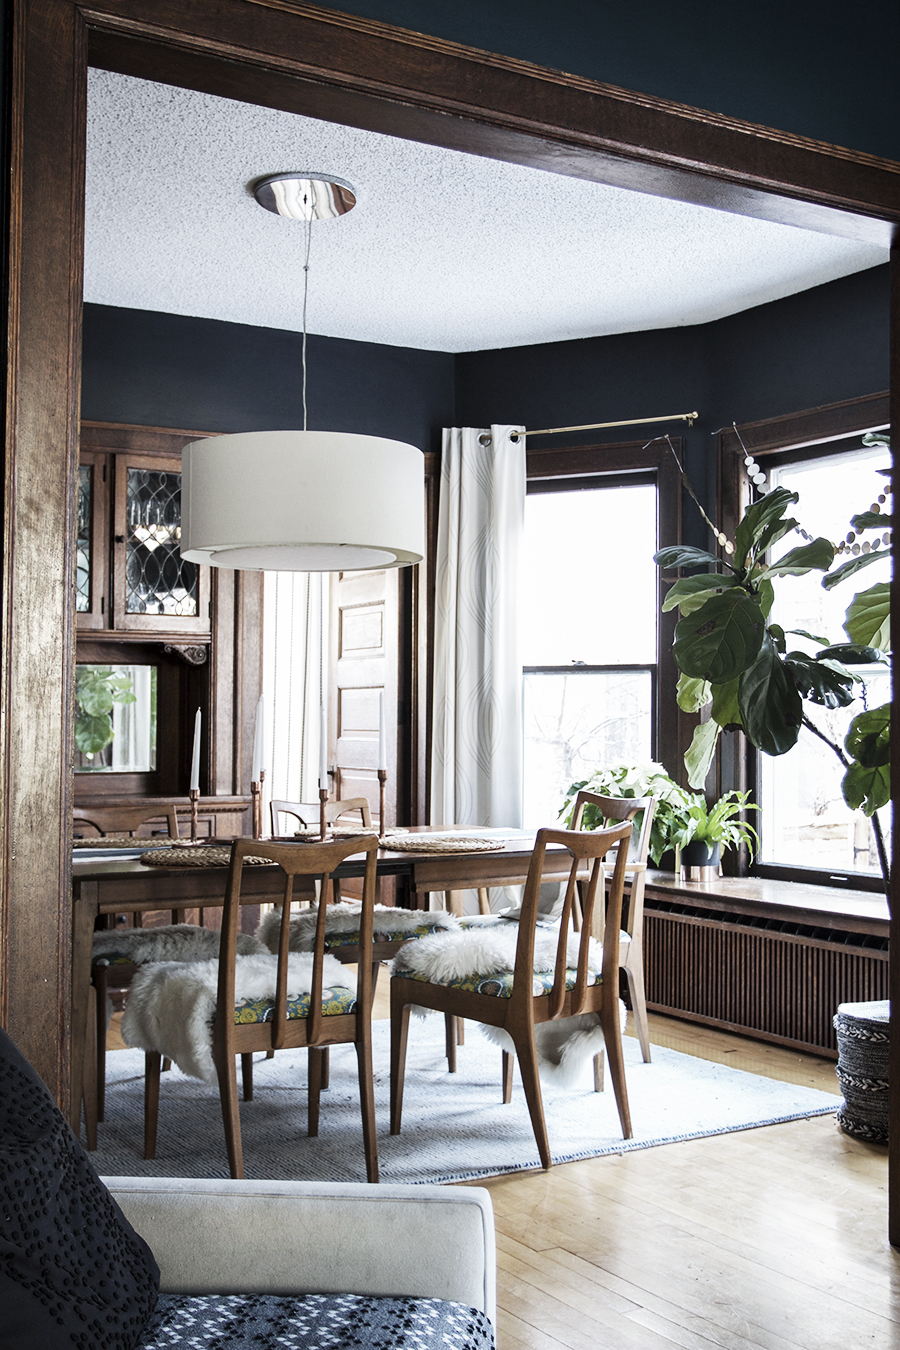 Dark and Modern Dining Room in an Old House | Deuce Cities Henhouse